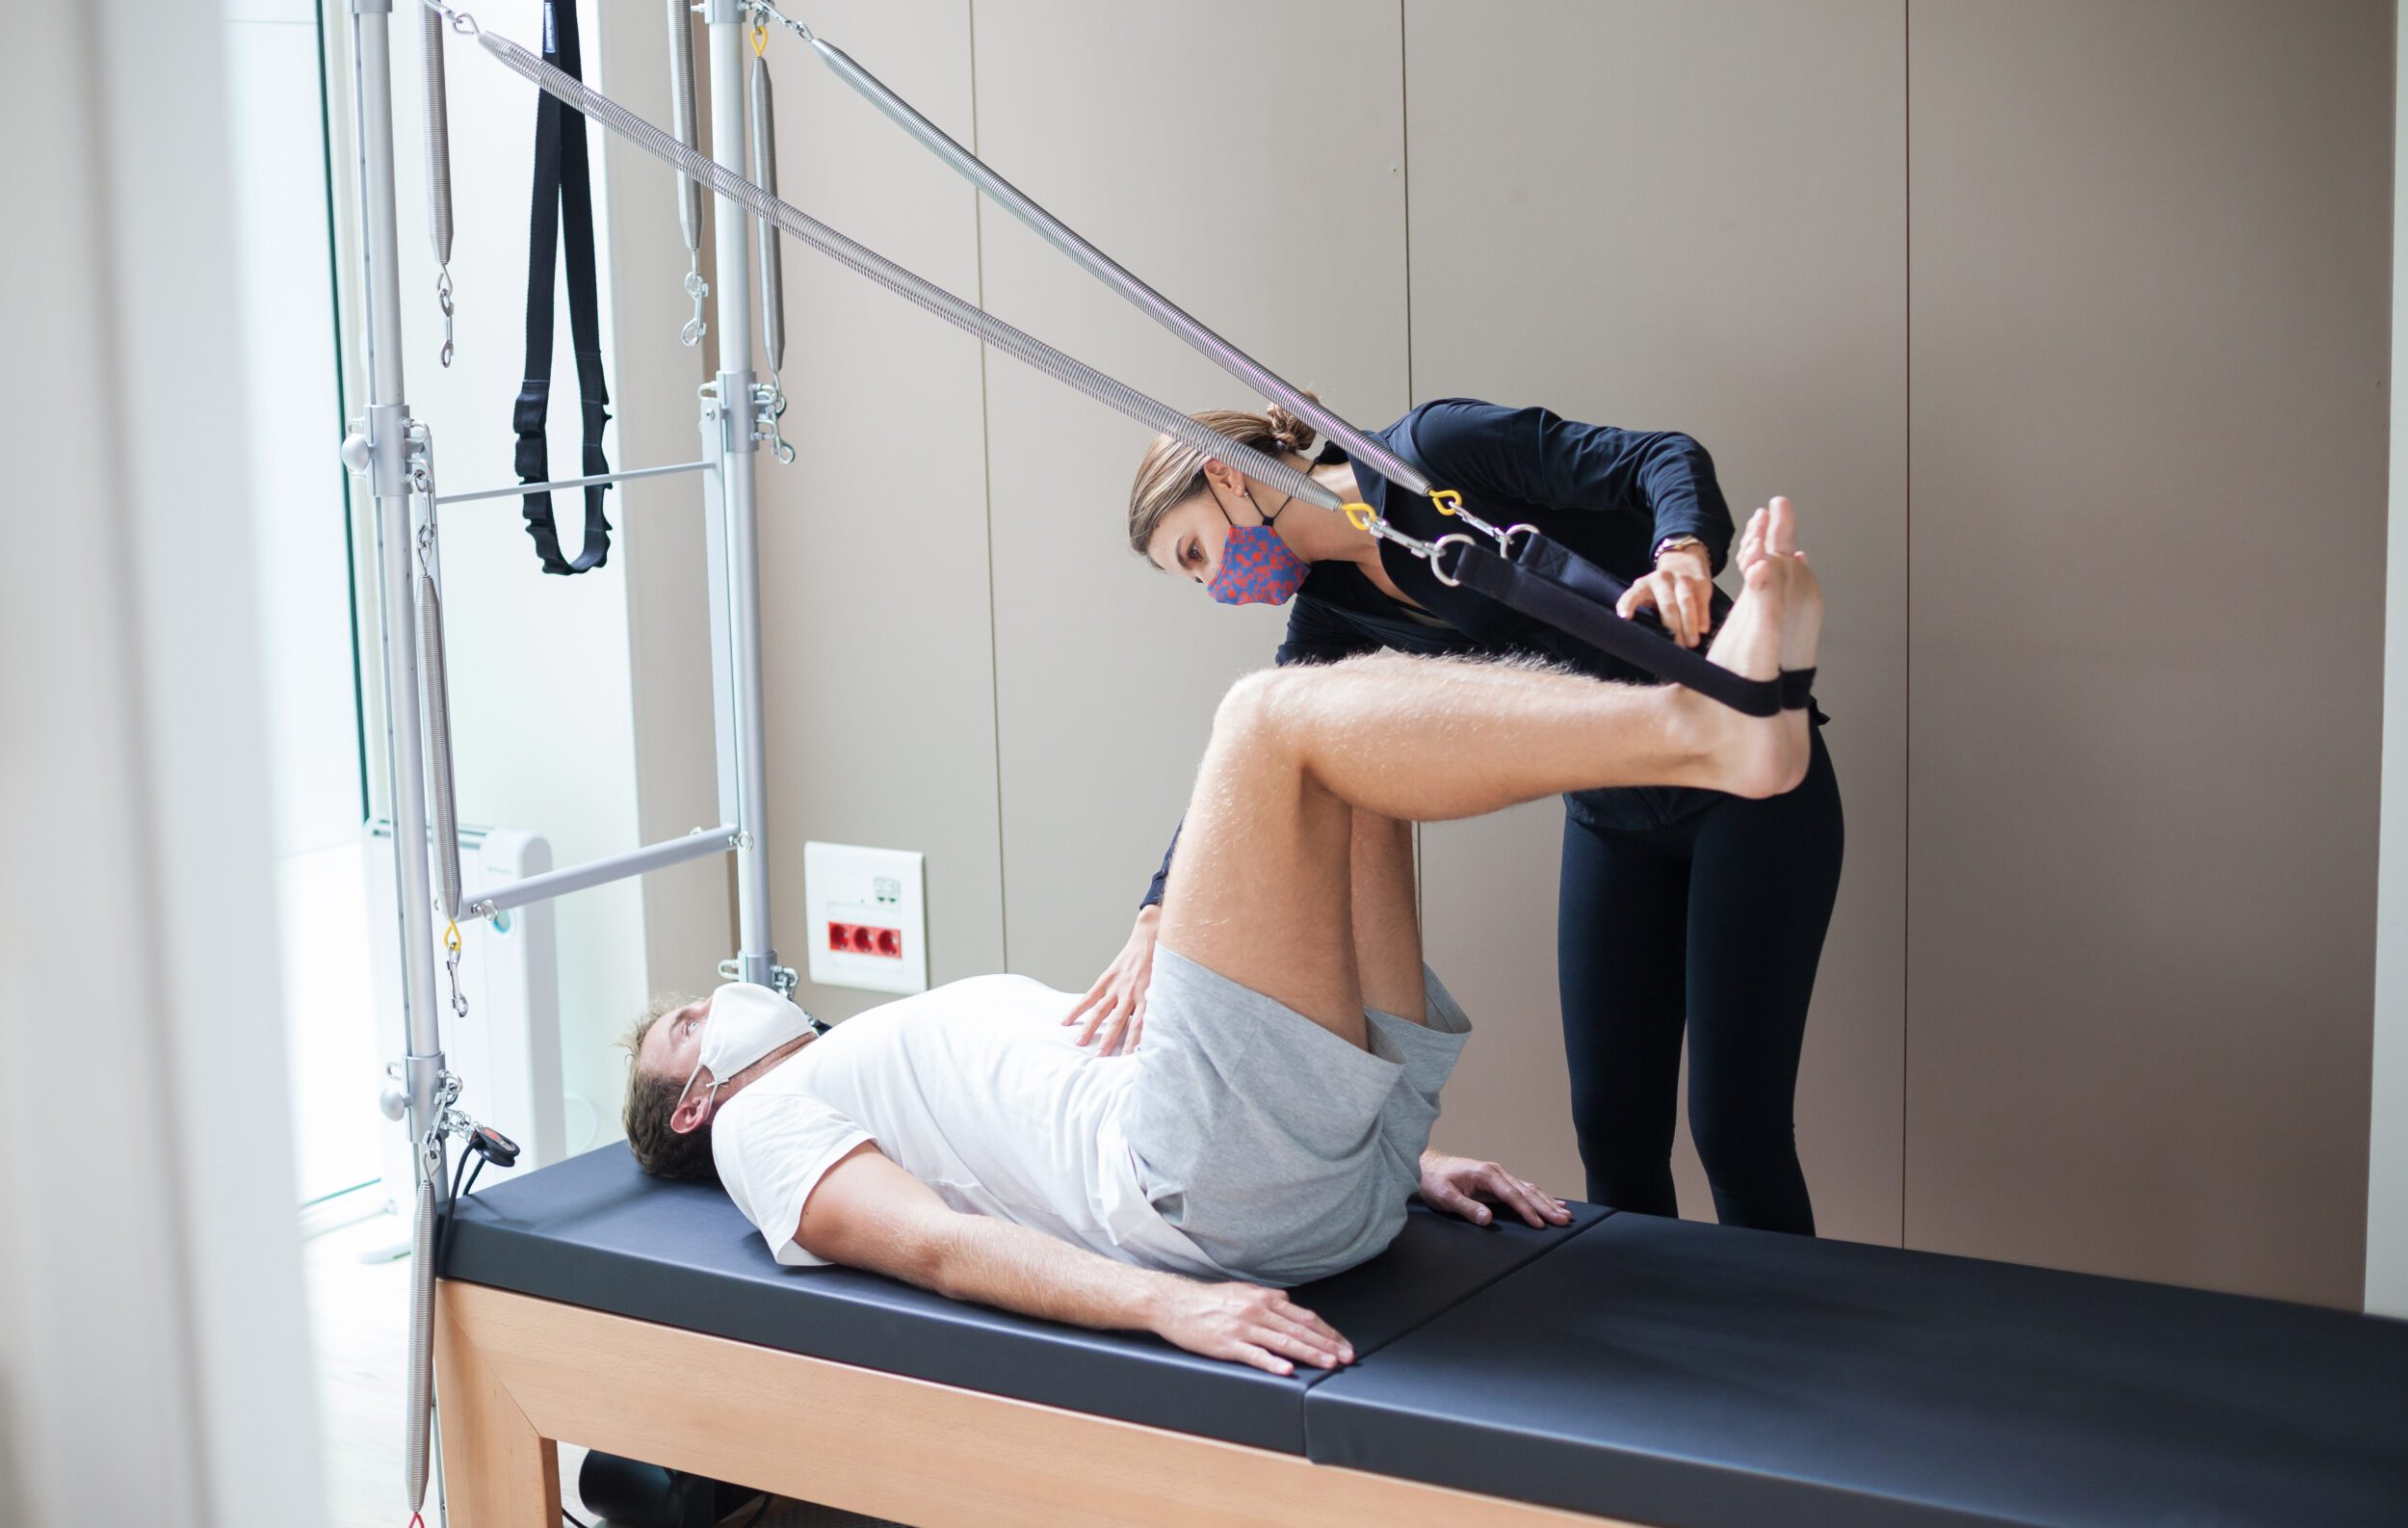 Pilates instructor assisting her client during Reformer workout while wearing masks